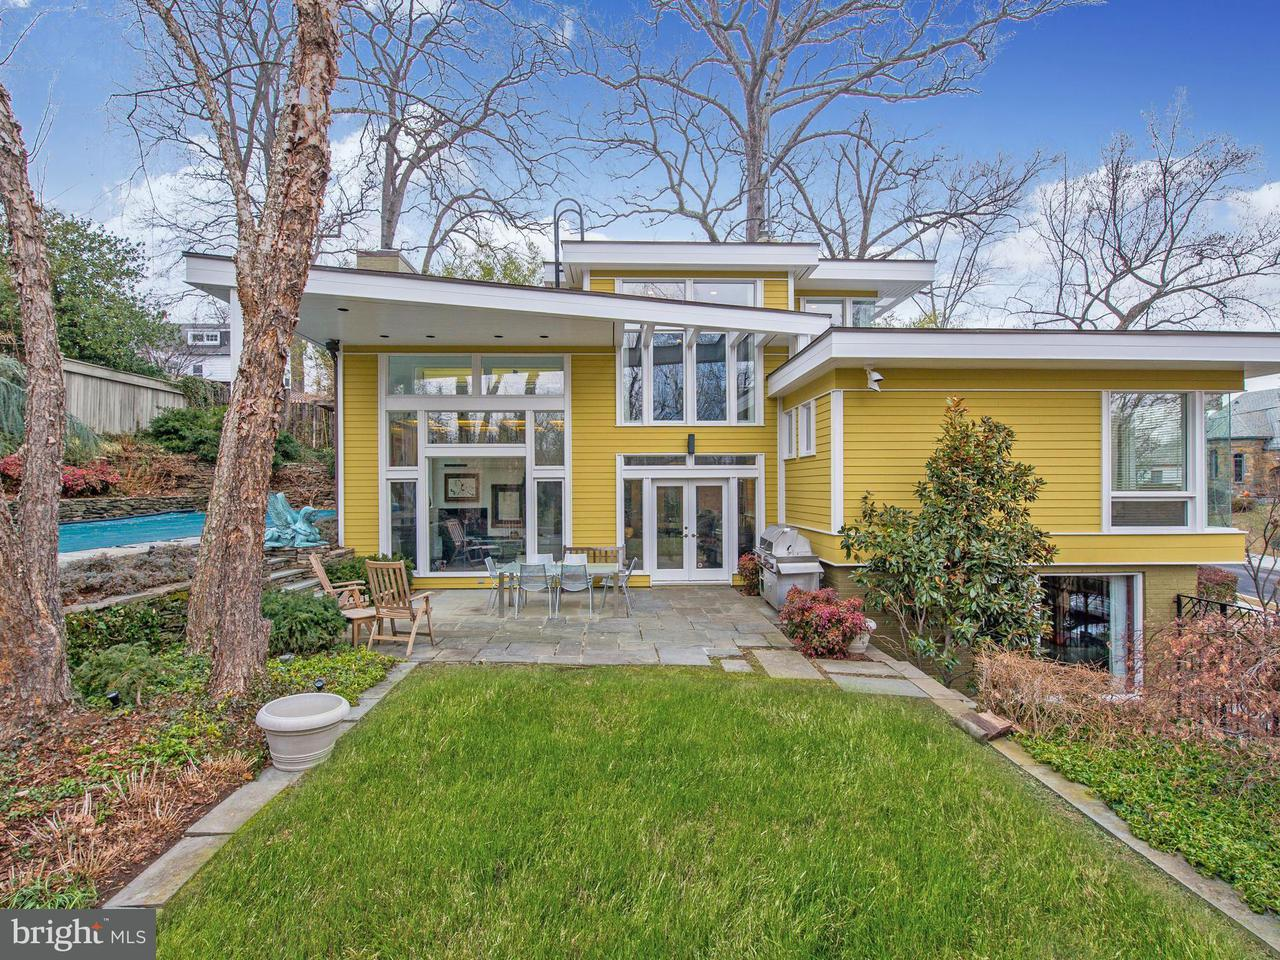 Single Family Home for Sale at 3204 Rowland Pl Nw 3204 Rowland Pl Nw Washington, District Of Columbia 20008 United States